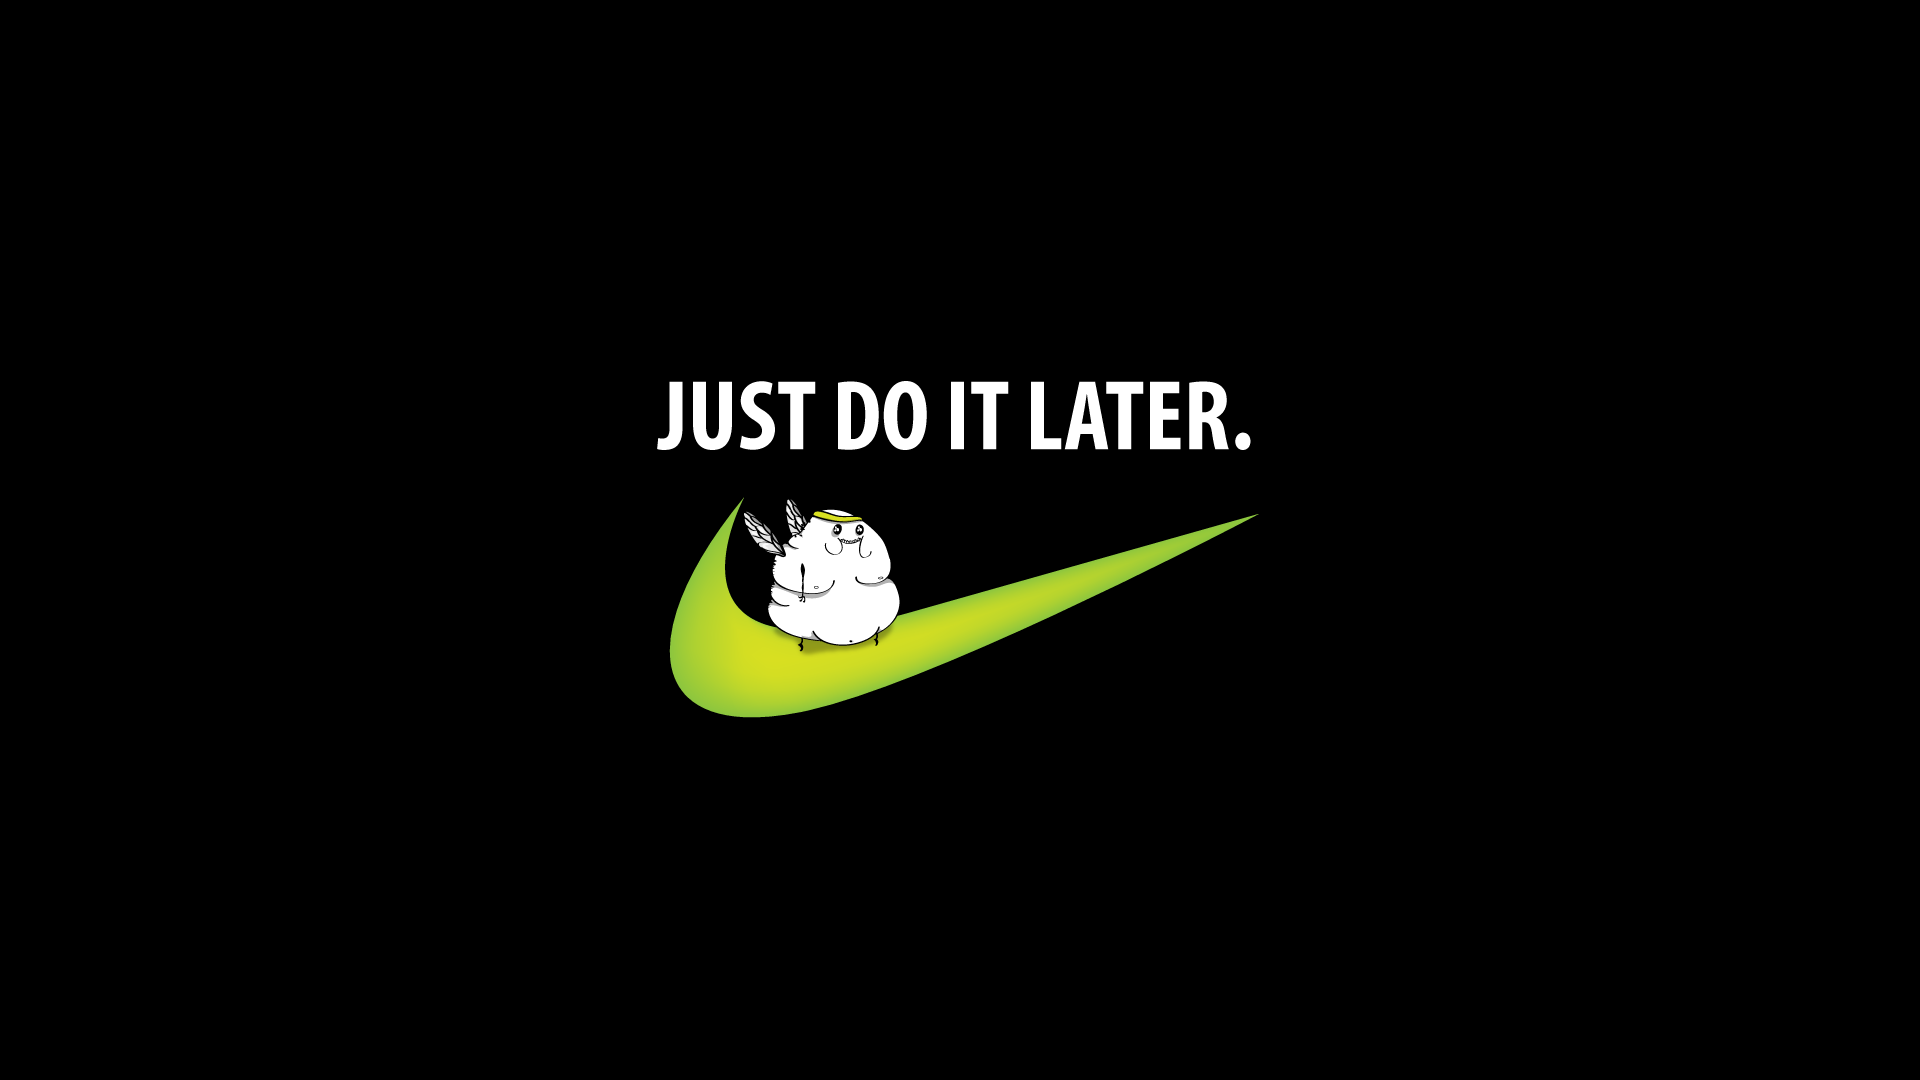 Wallpaper nike just do it hd resolution pictures pic download voltagebd Choice Image